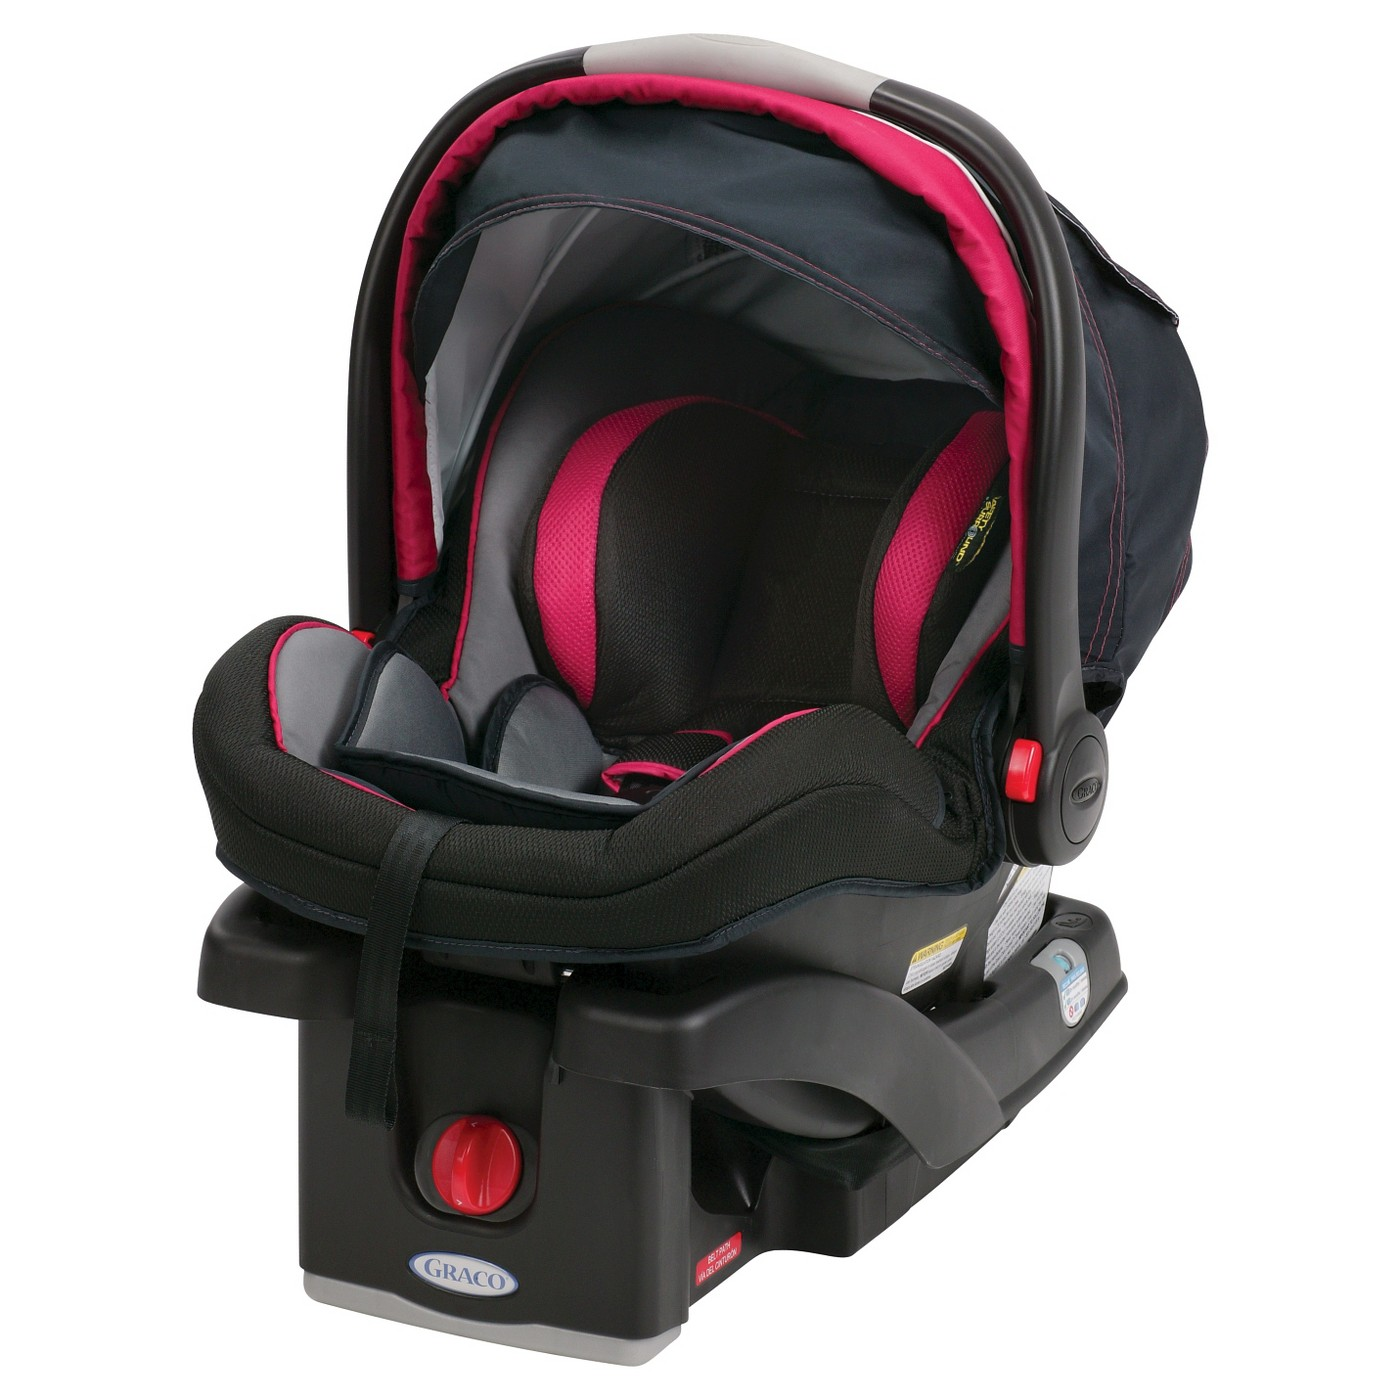 Target Car Seat Trade In Program Recycle Get 20 Off Coupon Towards New Or Stroller Valid Stores 4 22 5